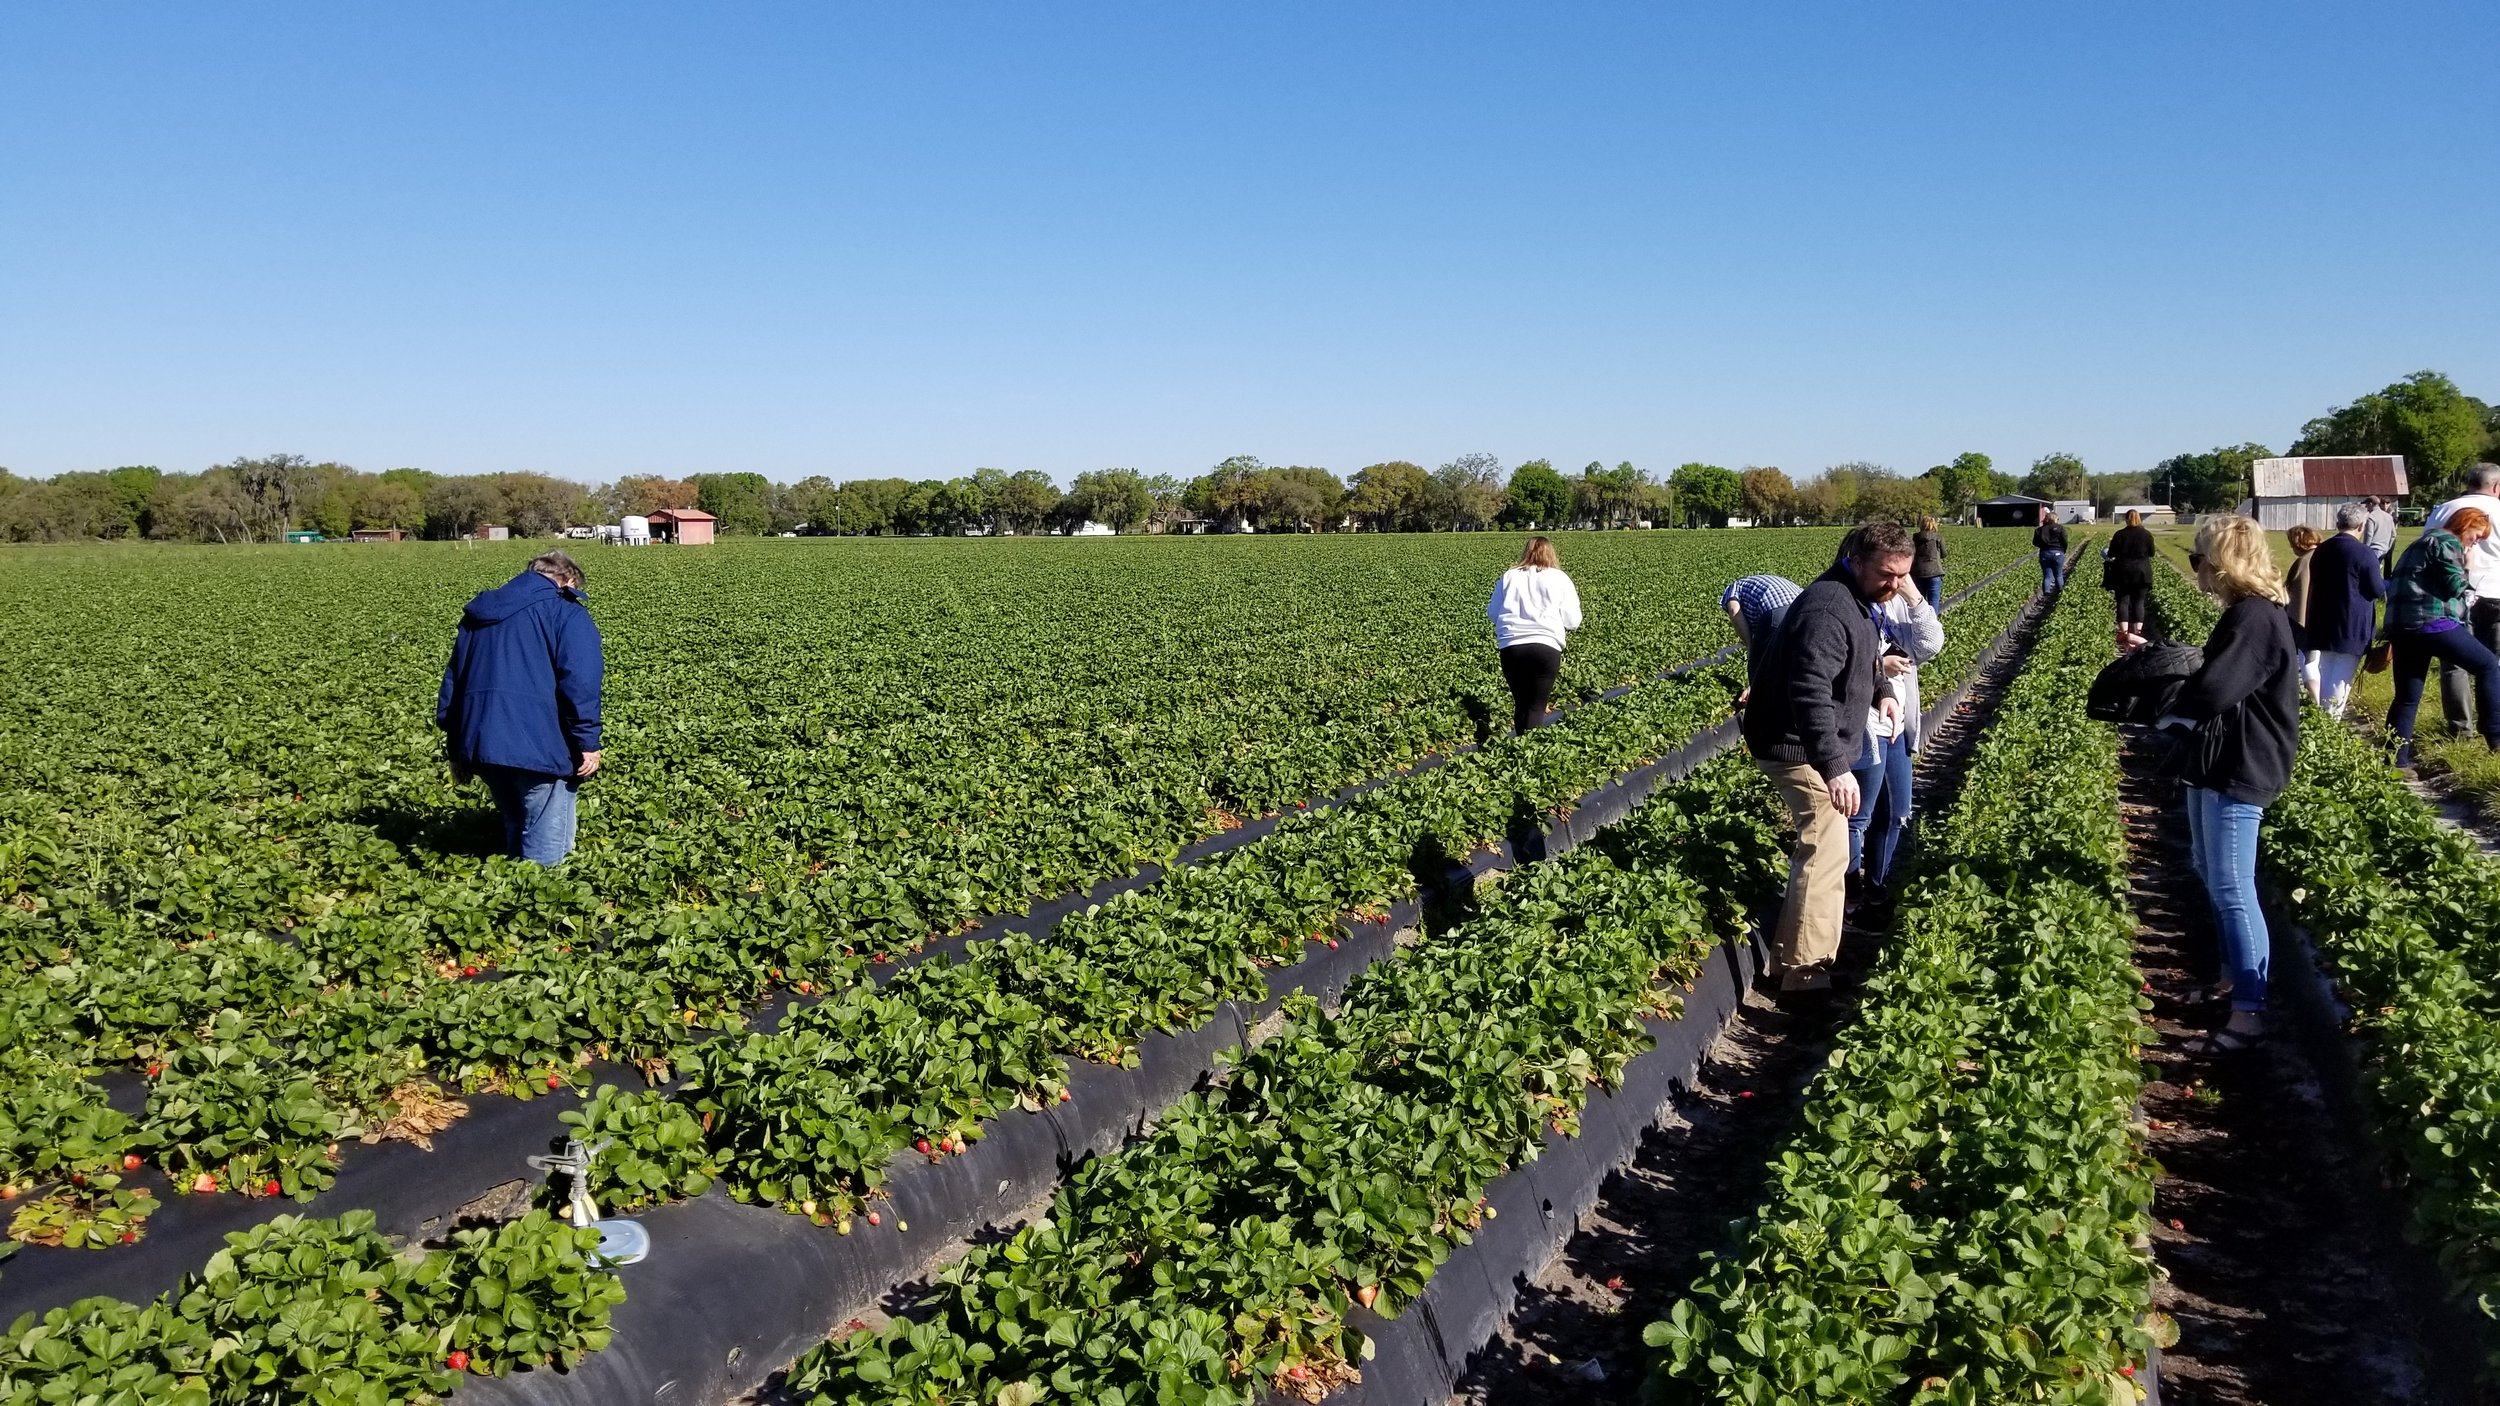 Sampling the berries at Fancy Farm in Plant City, Florida